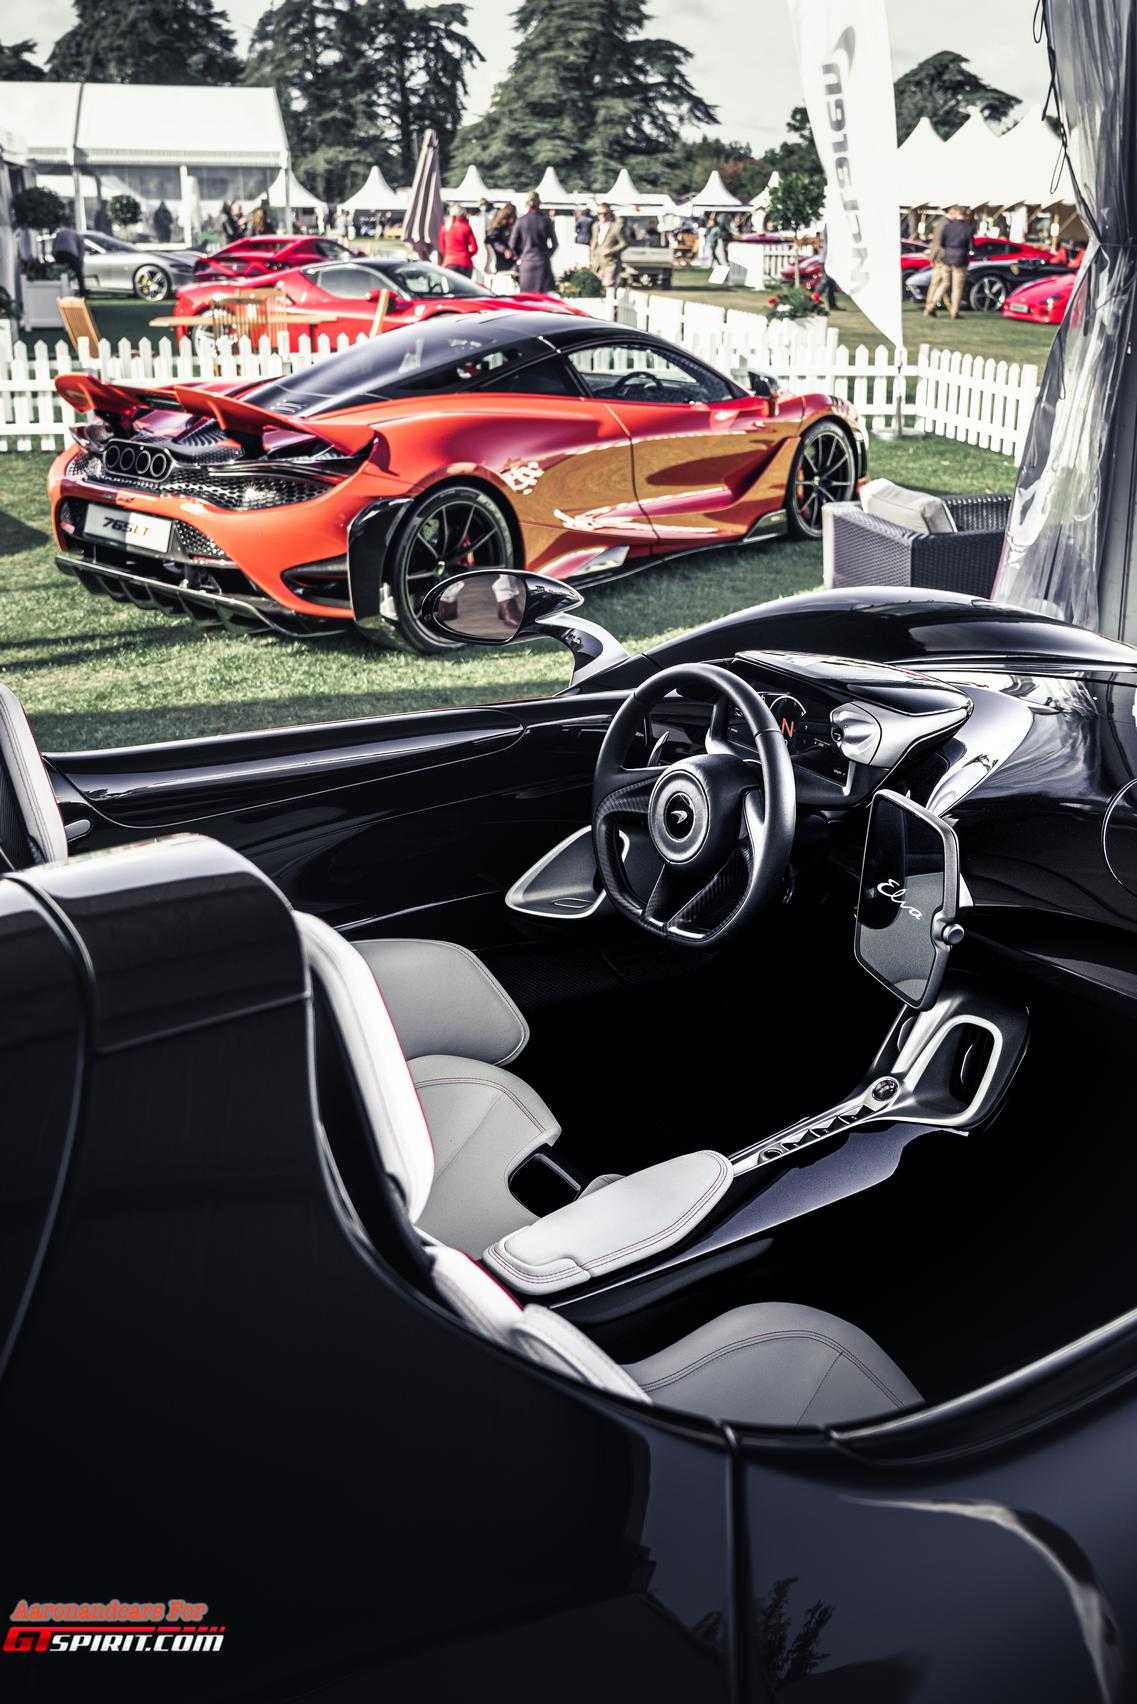 Salon Prive 2020 McLaren 765LT